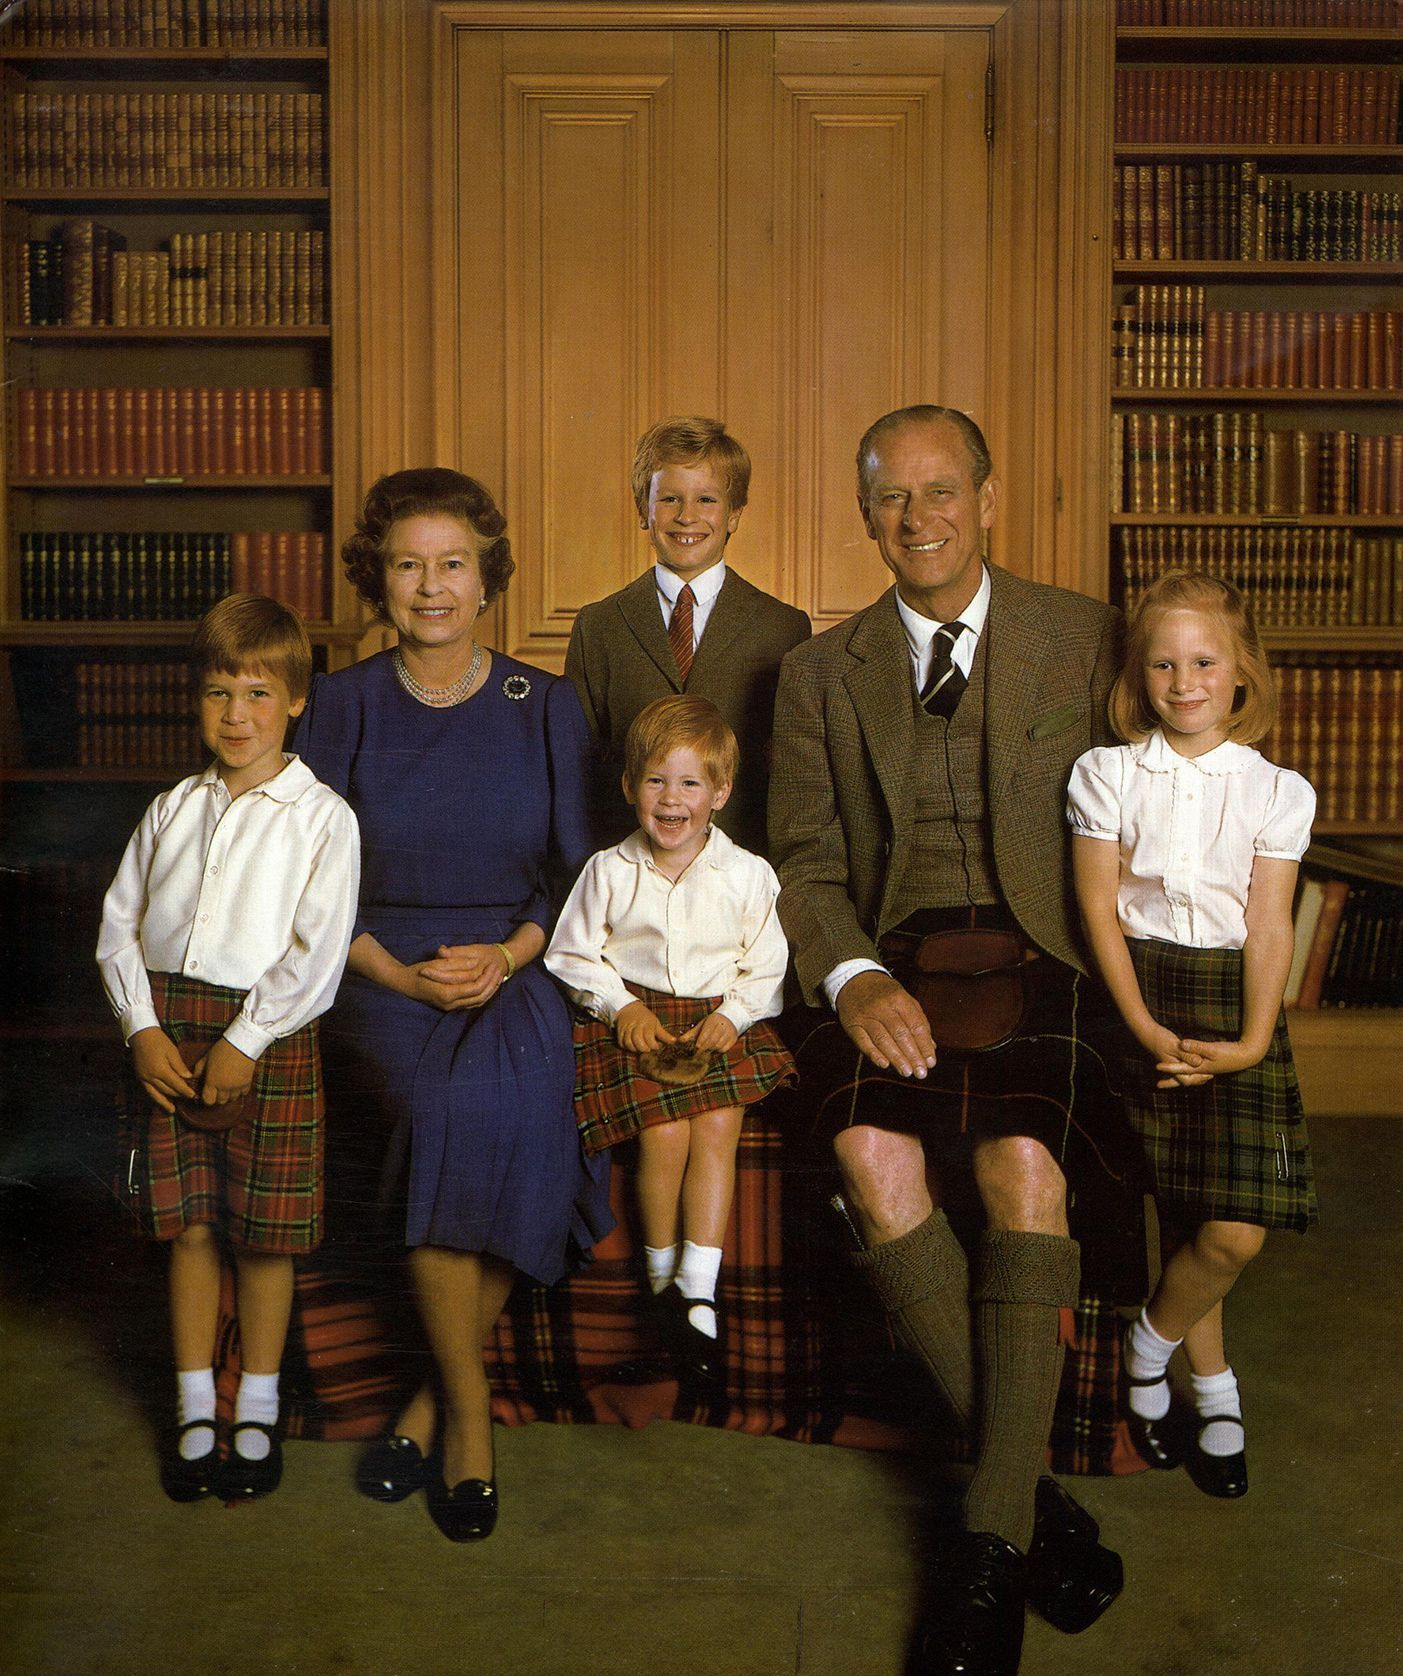 Patriot of Queen Elizabeth II and Prince Phillip with their grandchildren, Prince William, Prince Harry, Zara Tindall and Peter Phillips.